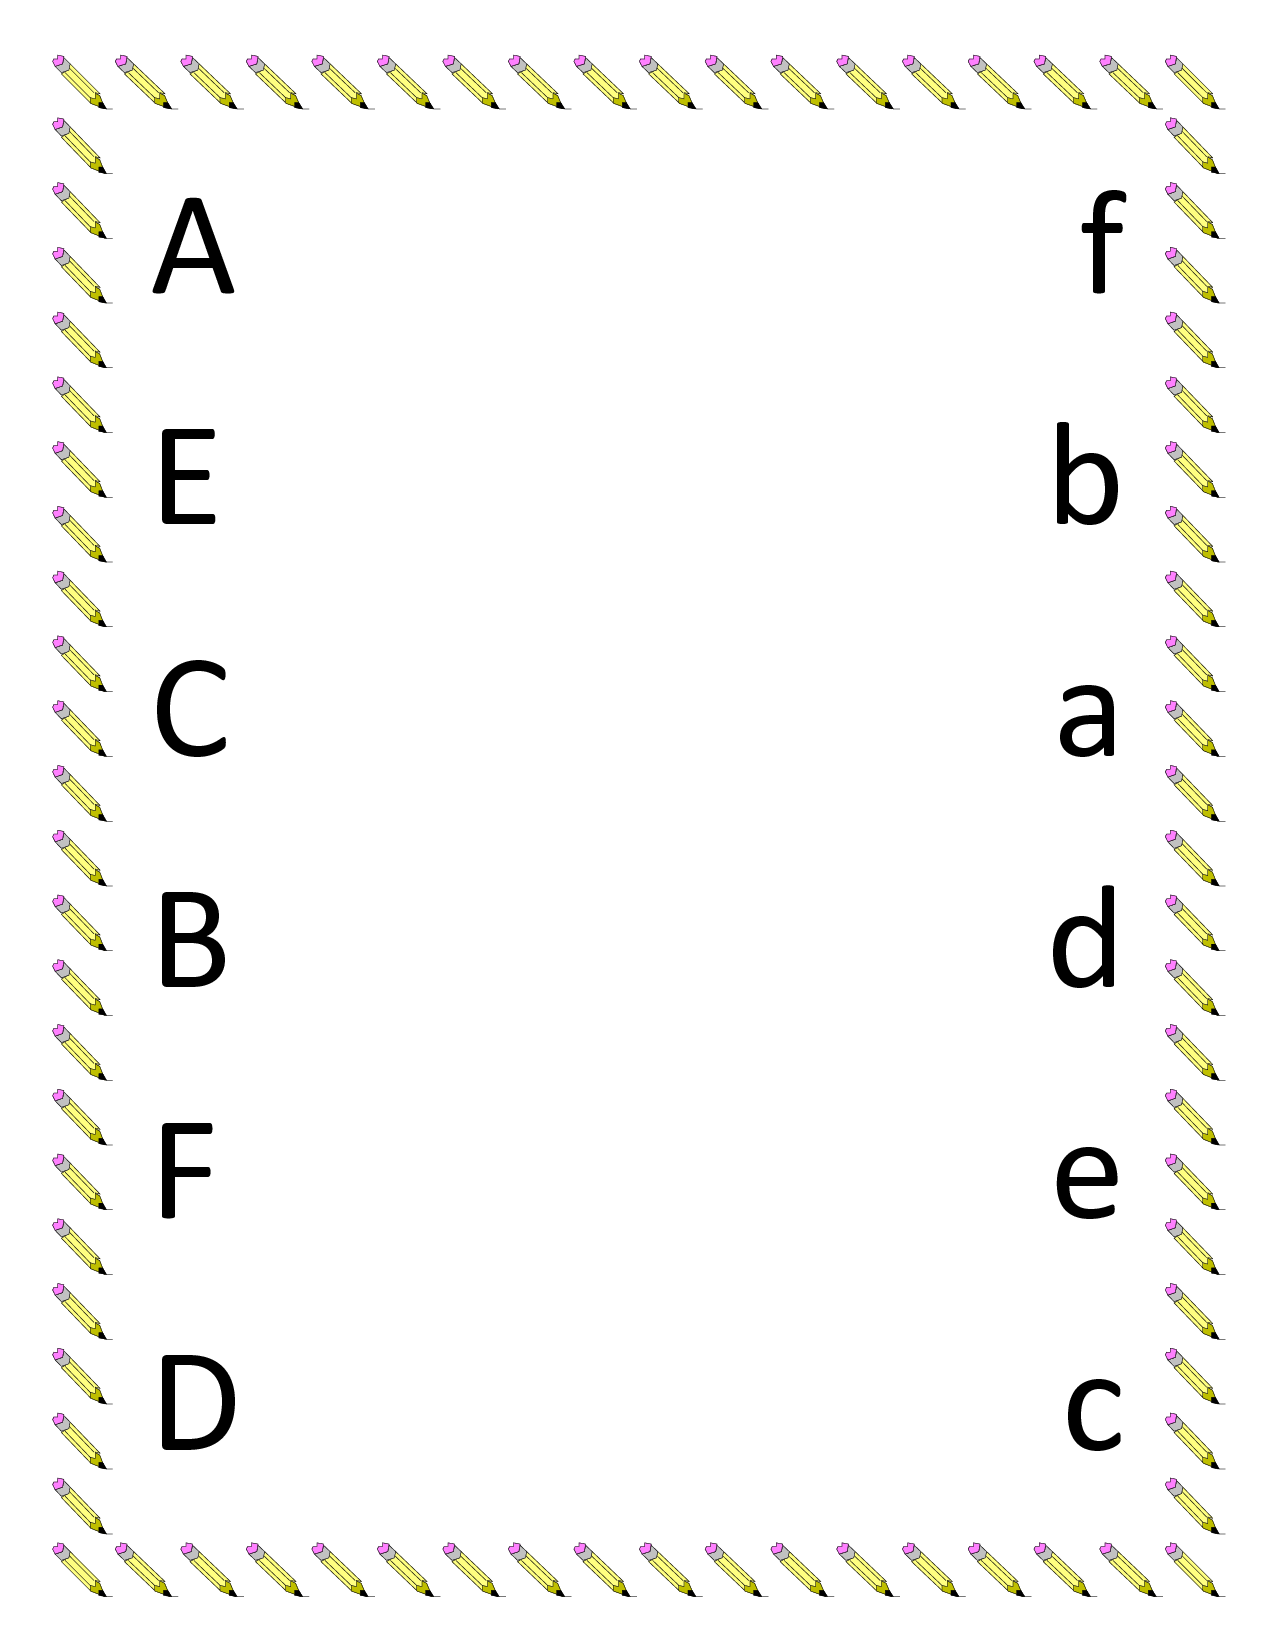 7 Images of Letter Matching Printables